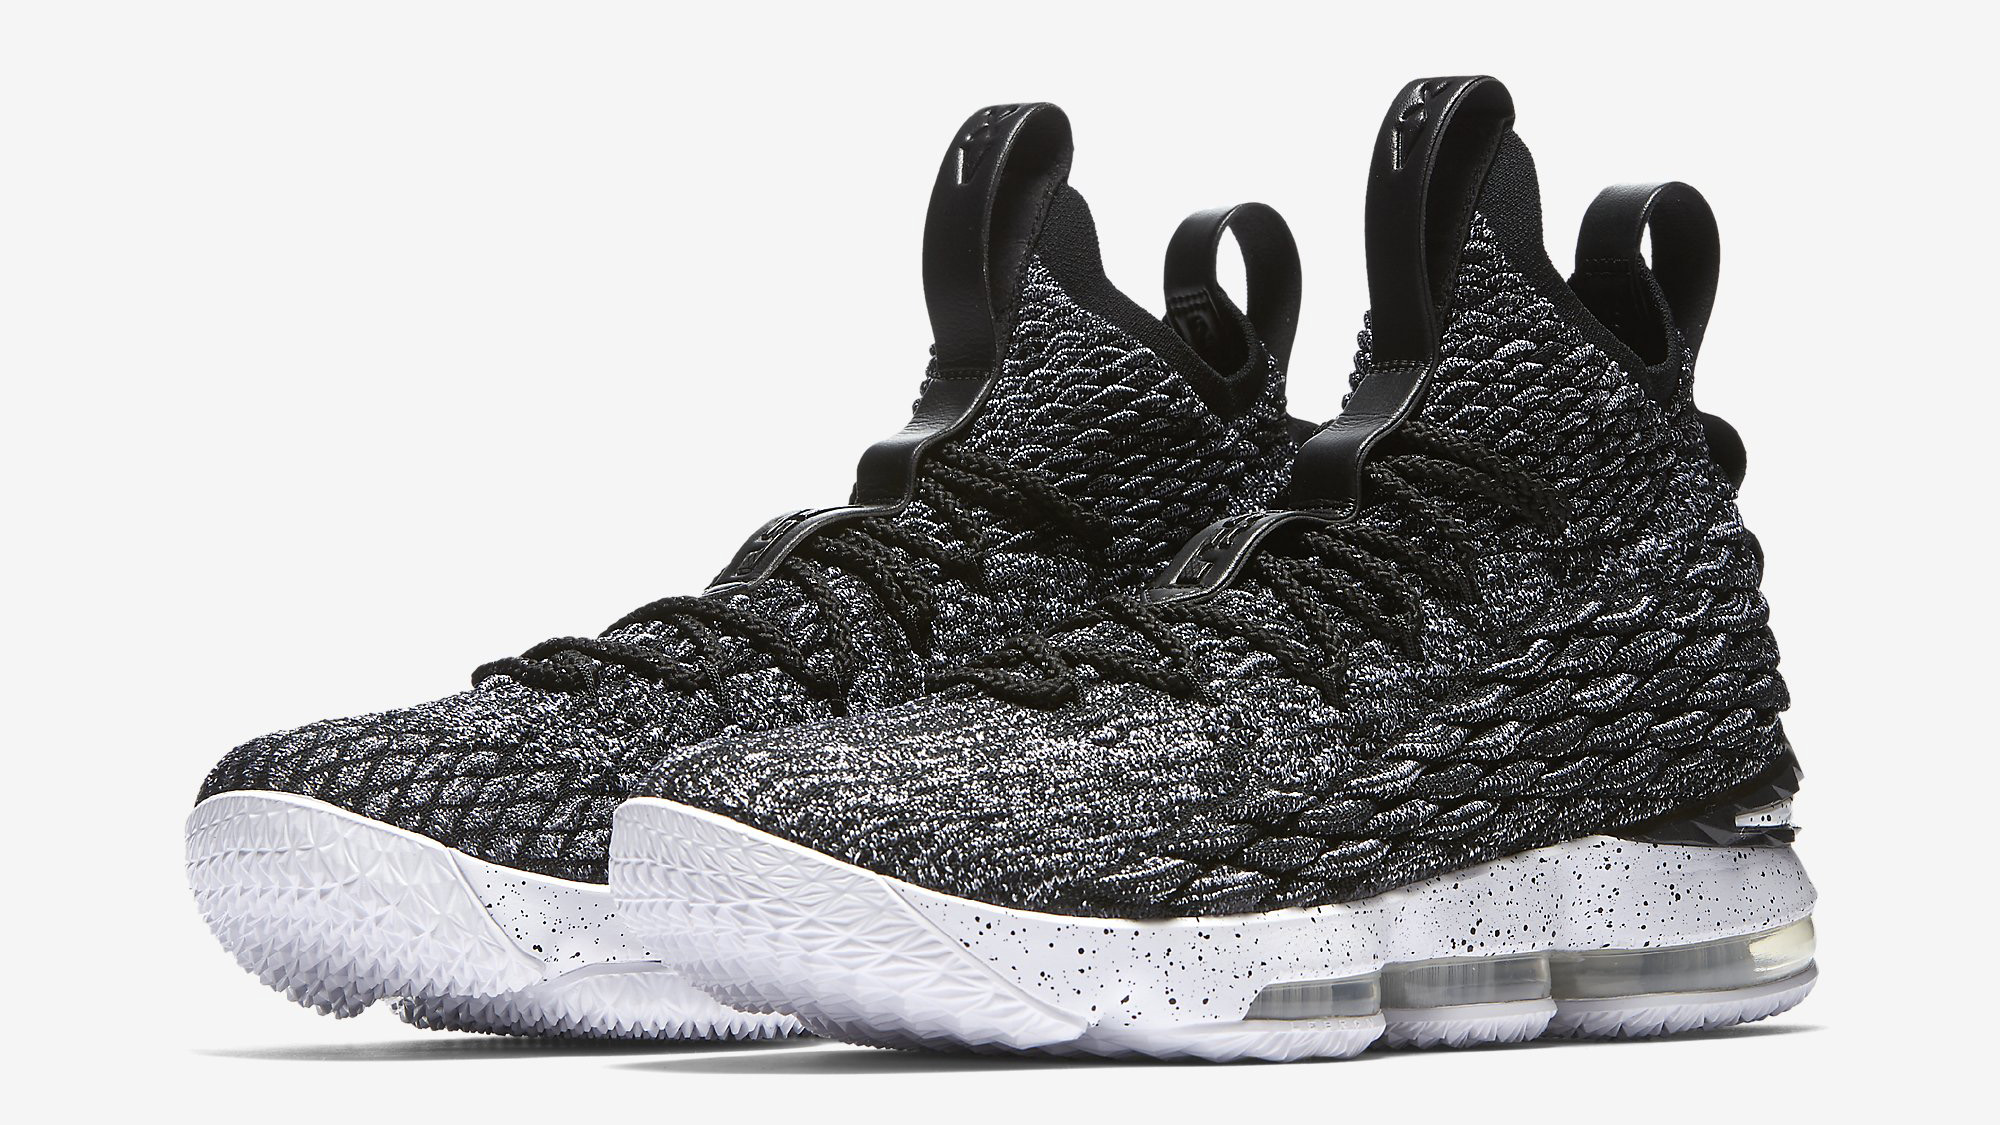 c5acc06f09853 Nike LeBron 15 Performance Review